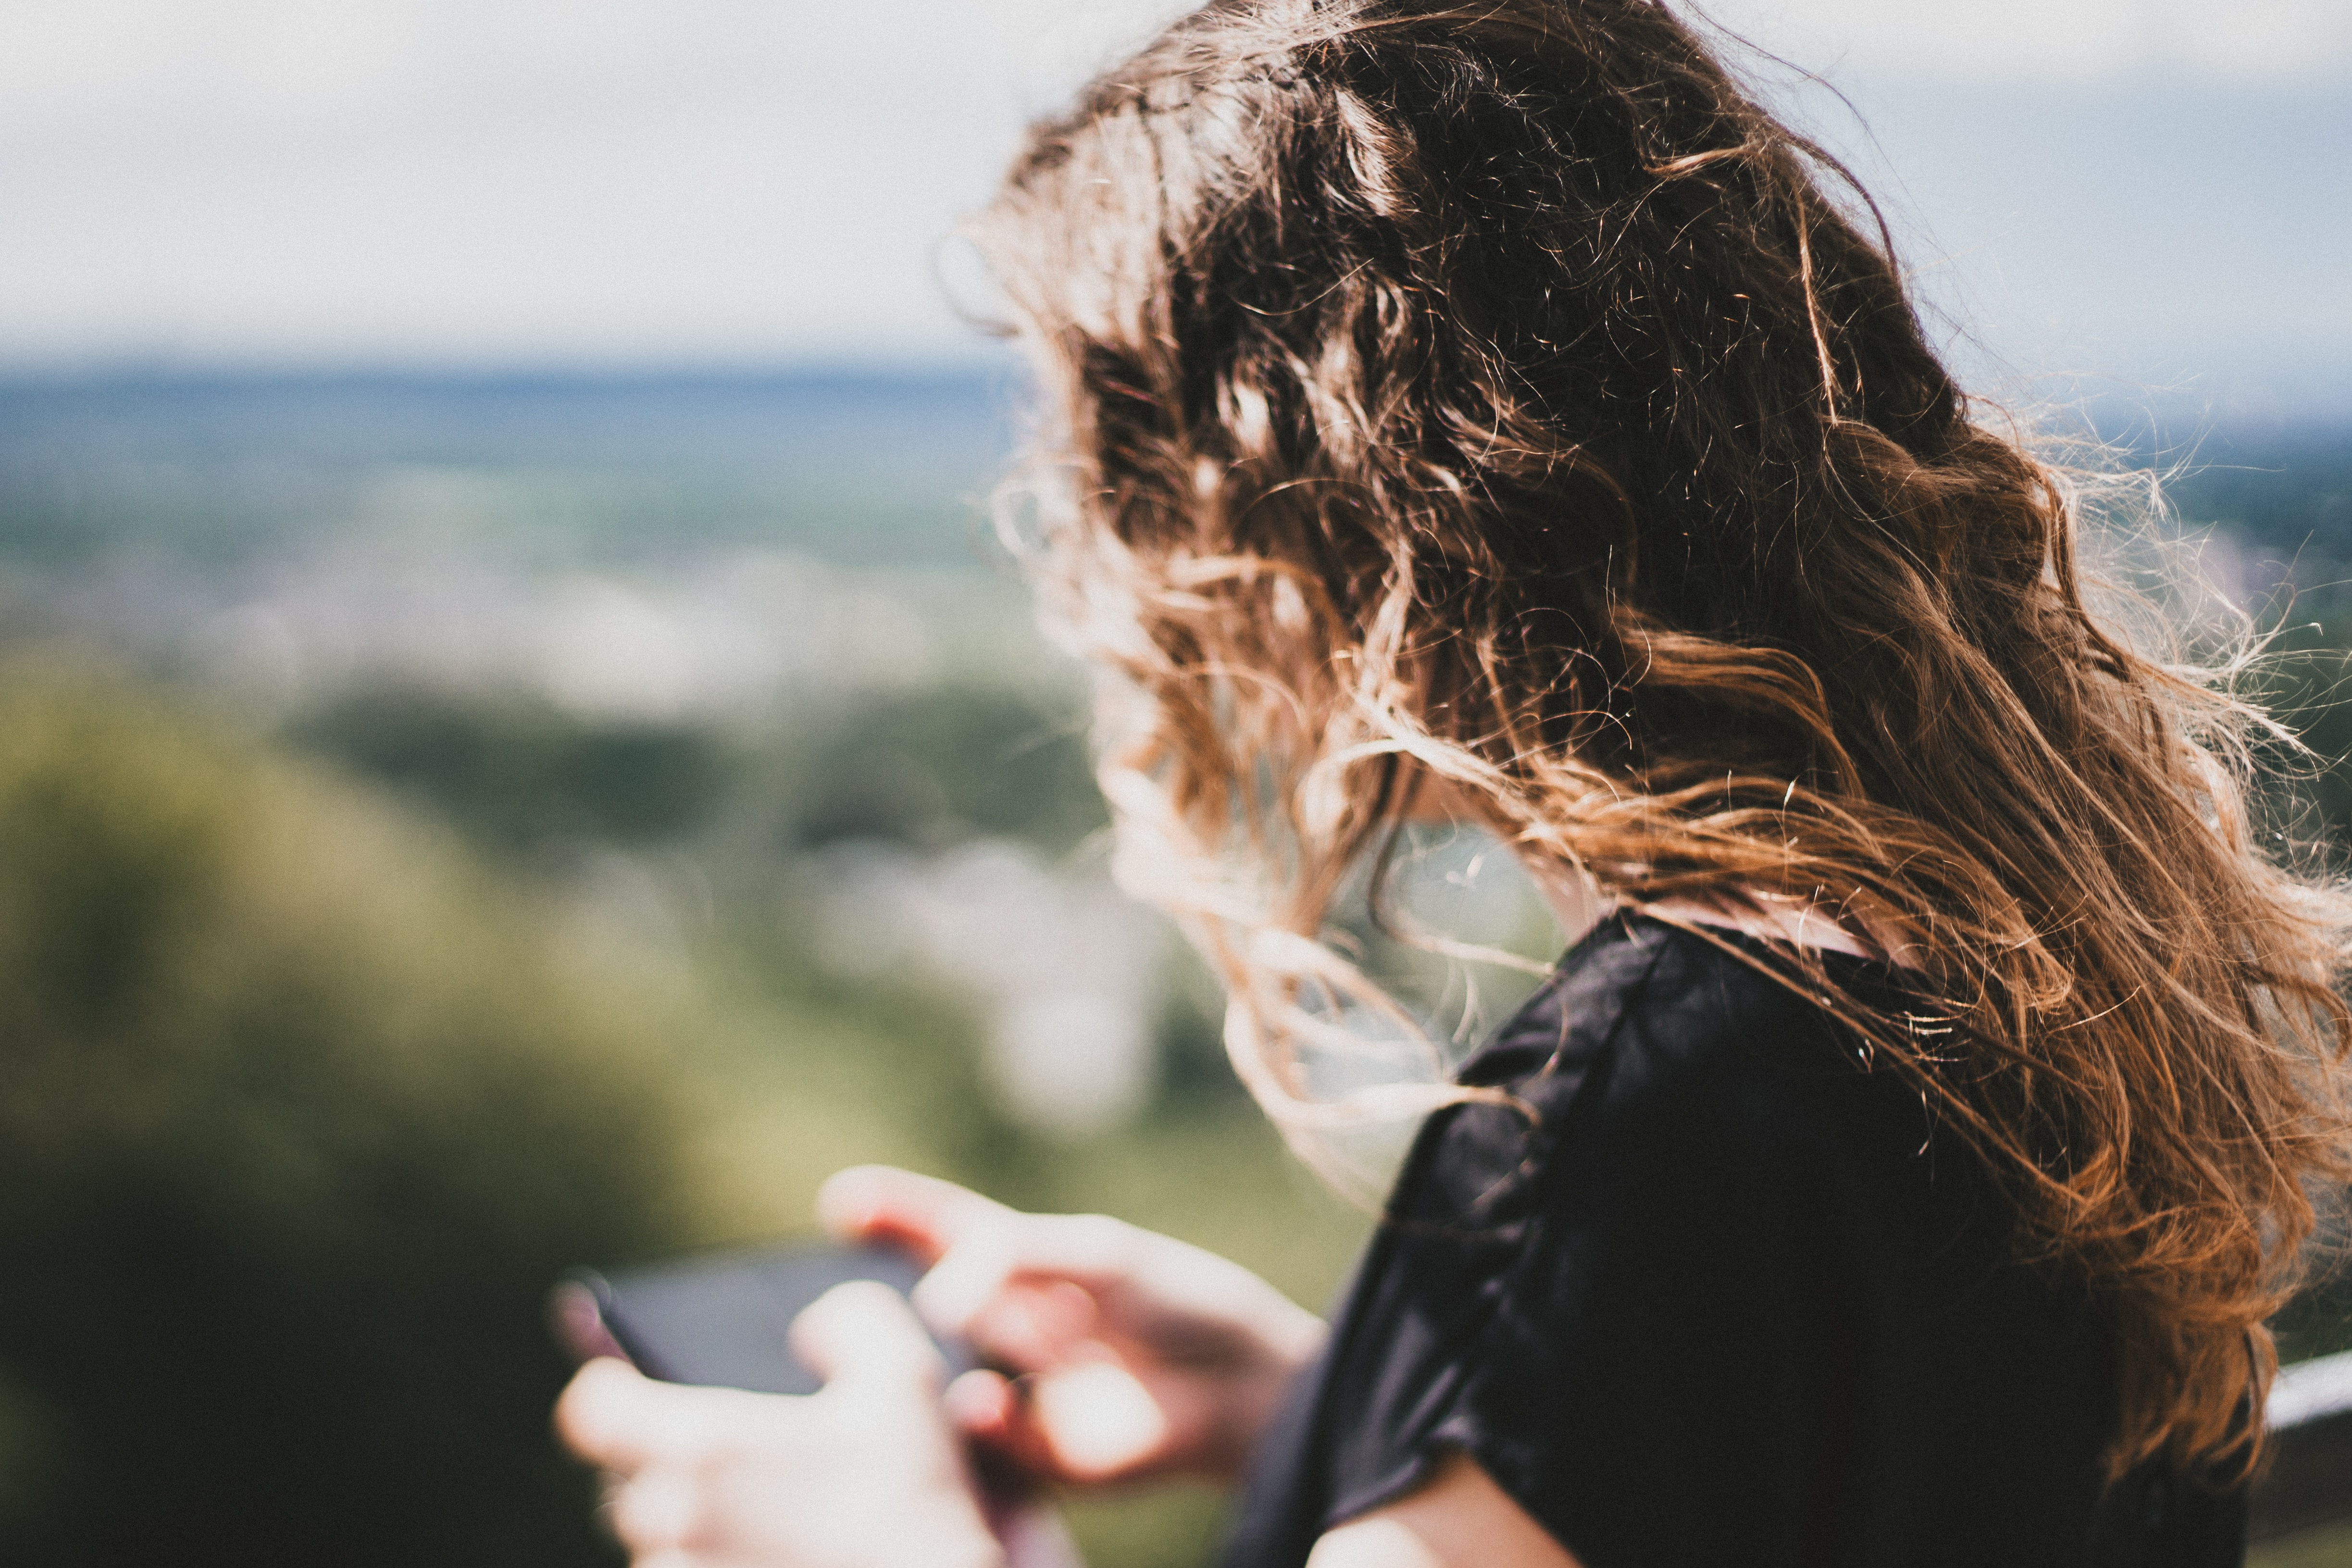 A woman with brown curly hair looks down to use her cell phone outdoors